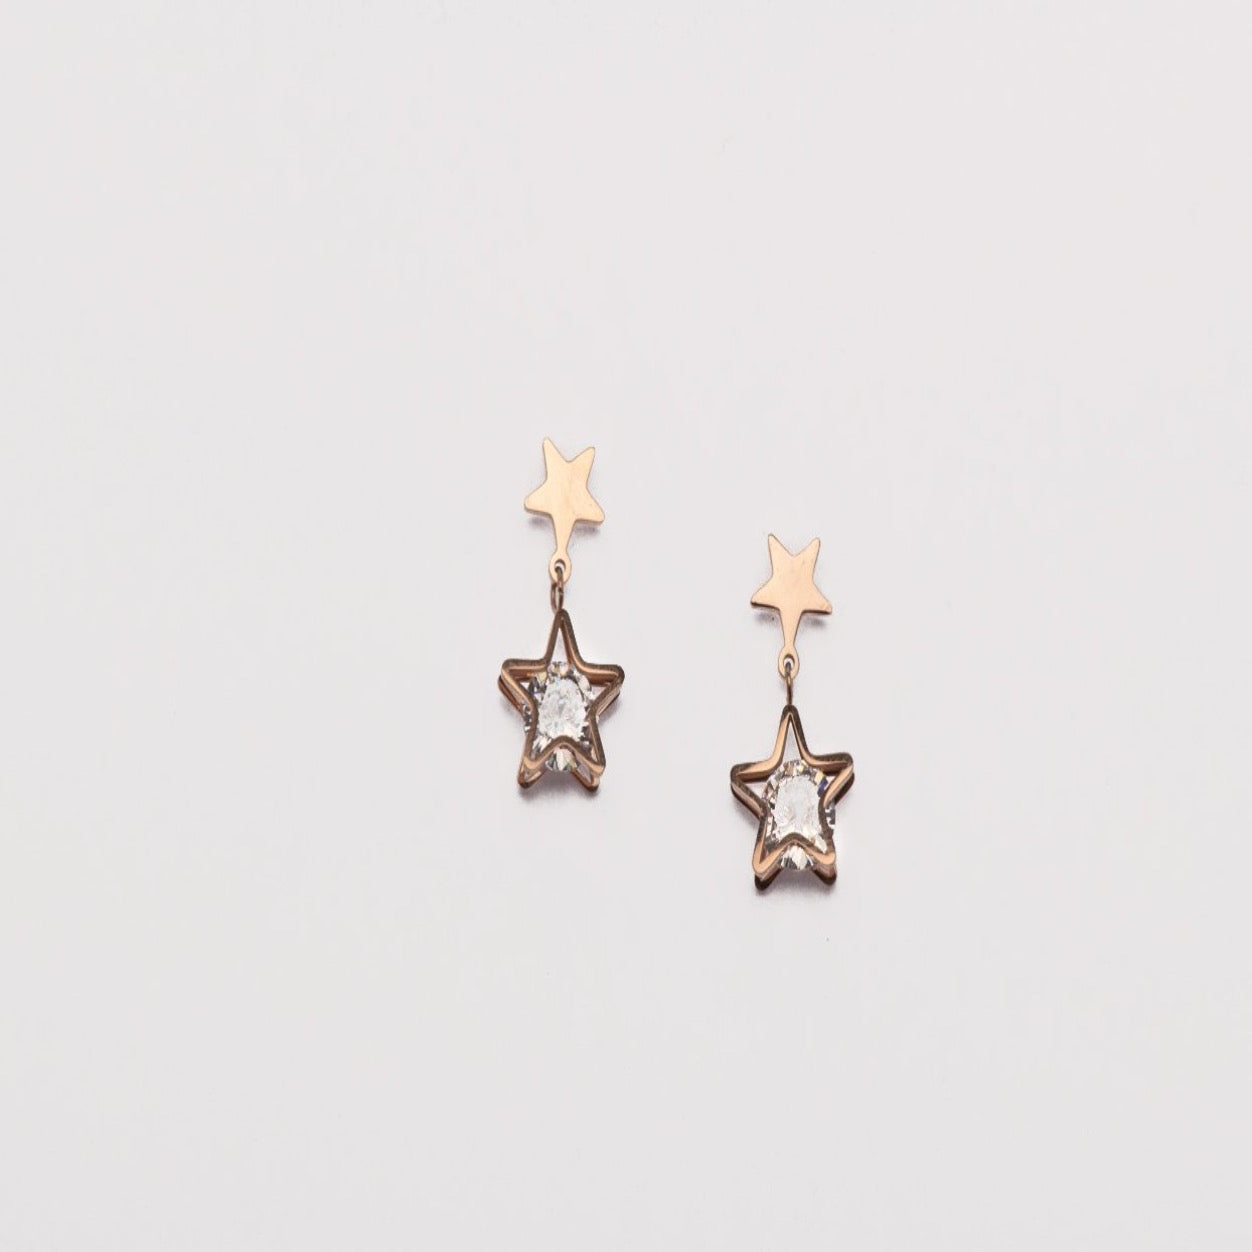 Stainless steel rose gold star studs